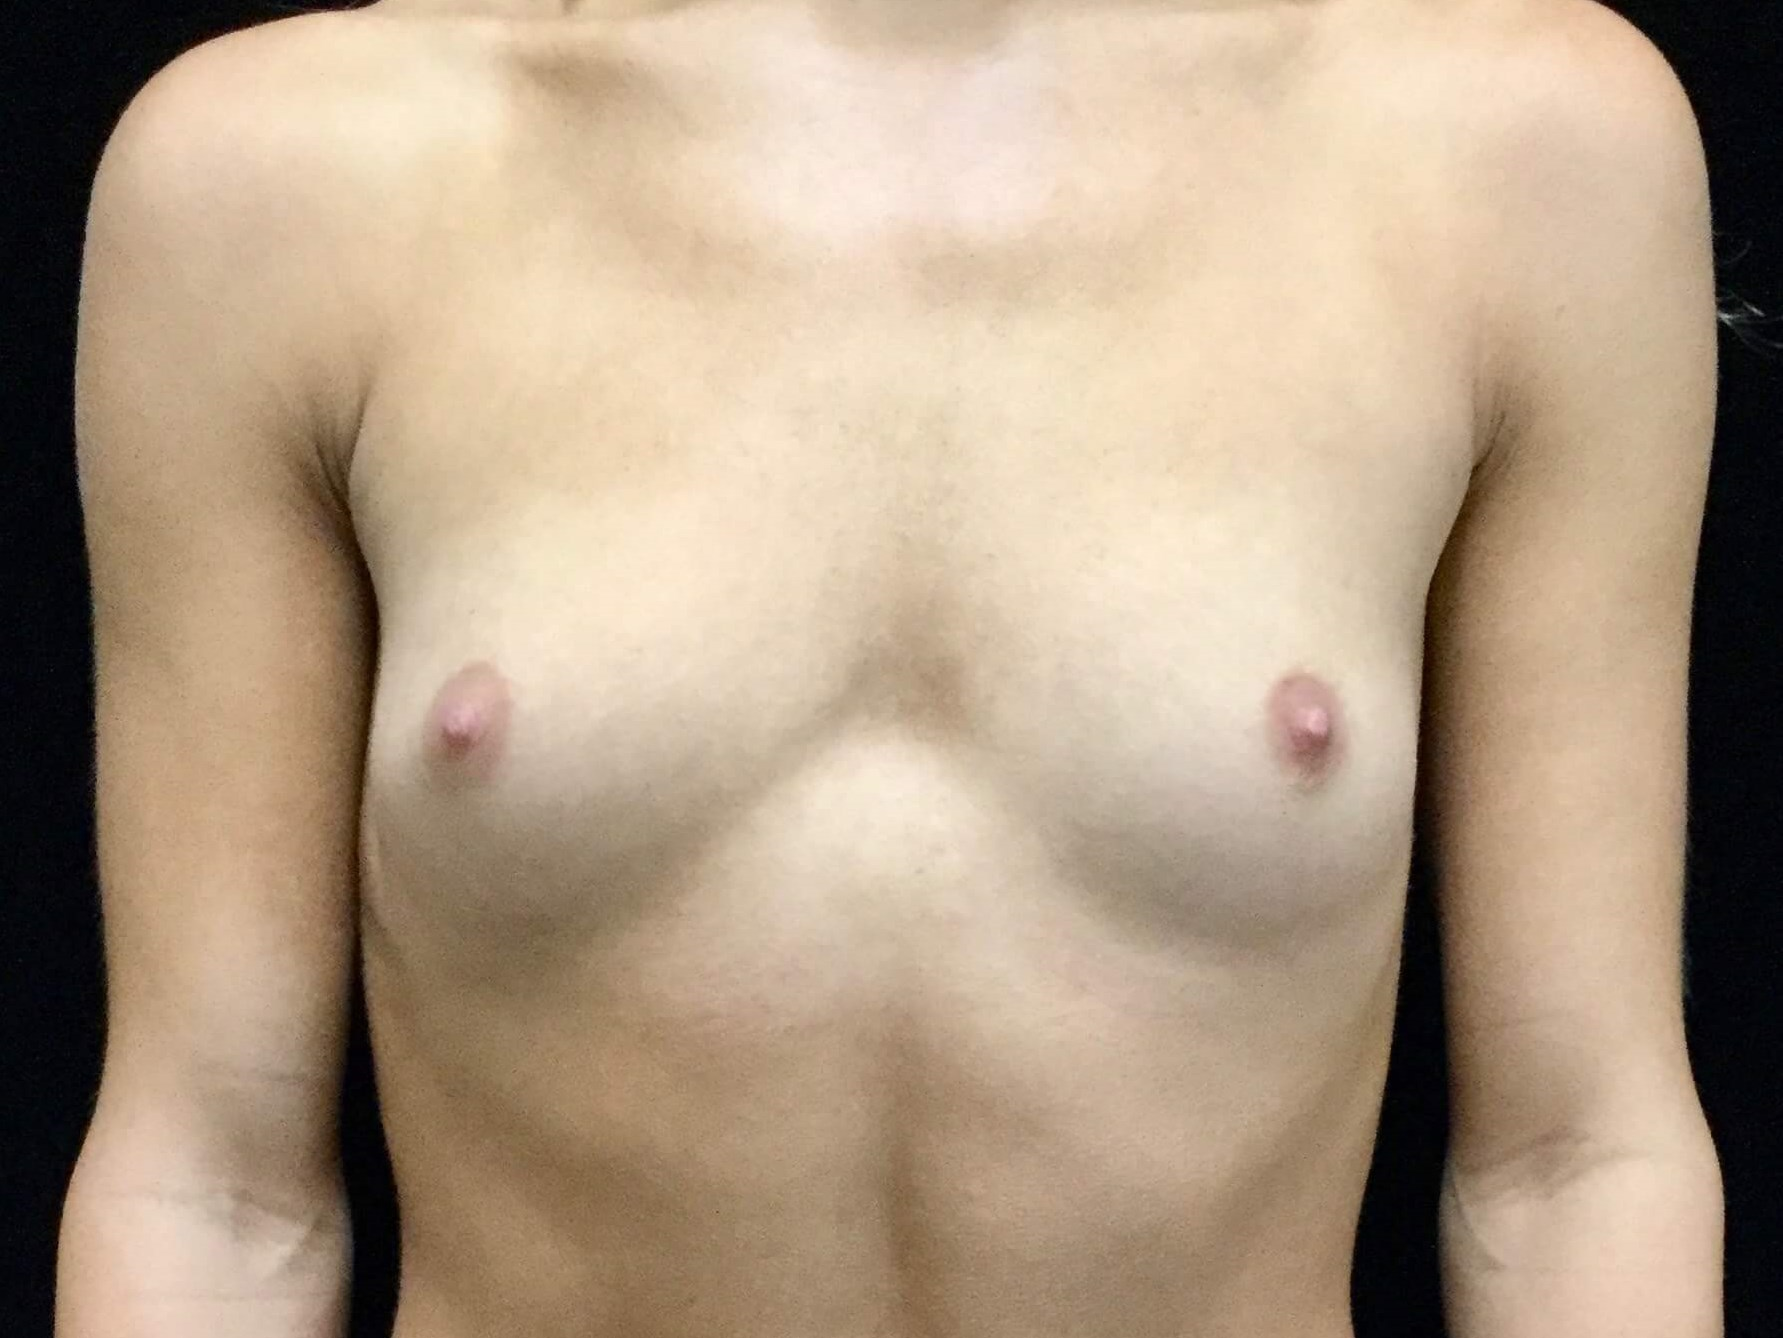 DALLAS, TEXAS WOMAN HAS BREAST AUGMENTATION WITH TEXTURED SILICONE GEL IMPLANTS